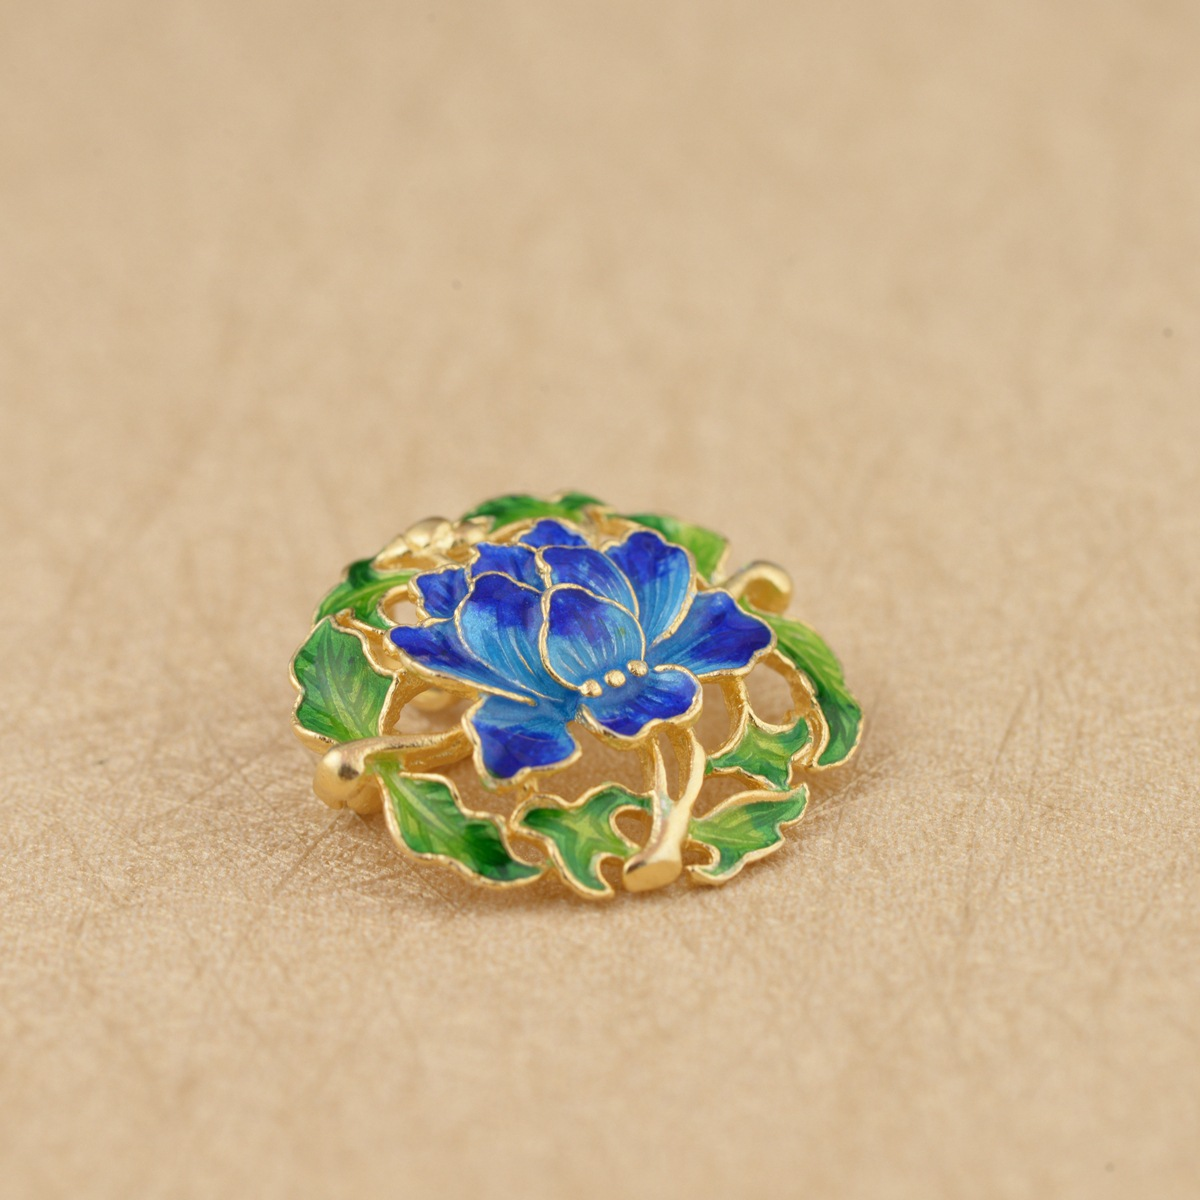 Thai Silver Peony Blossom Brooch Pendant Handmade Flower Silver Brooches Flowers Chinese Style Pin Luxury Jewelry 2.7cm SBH0003